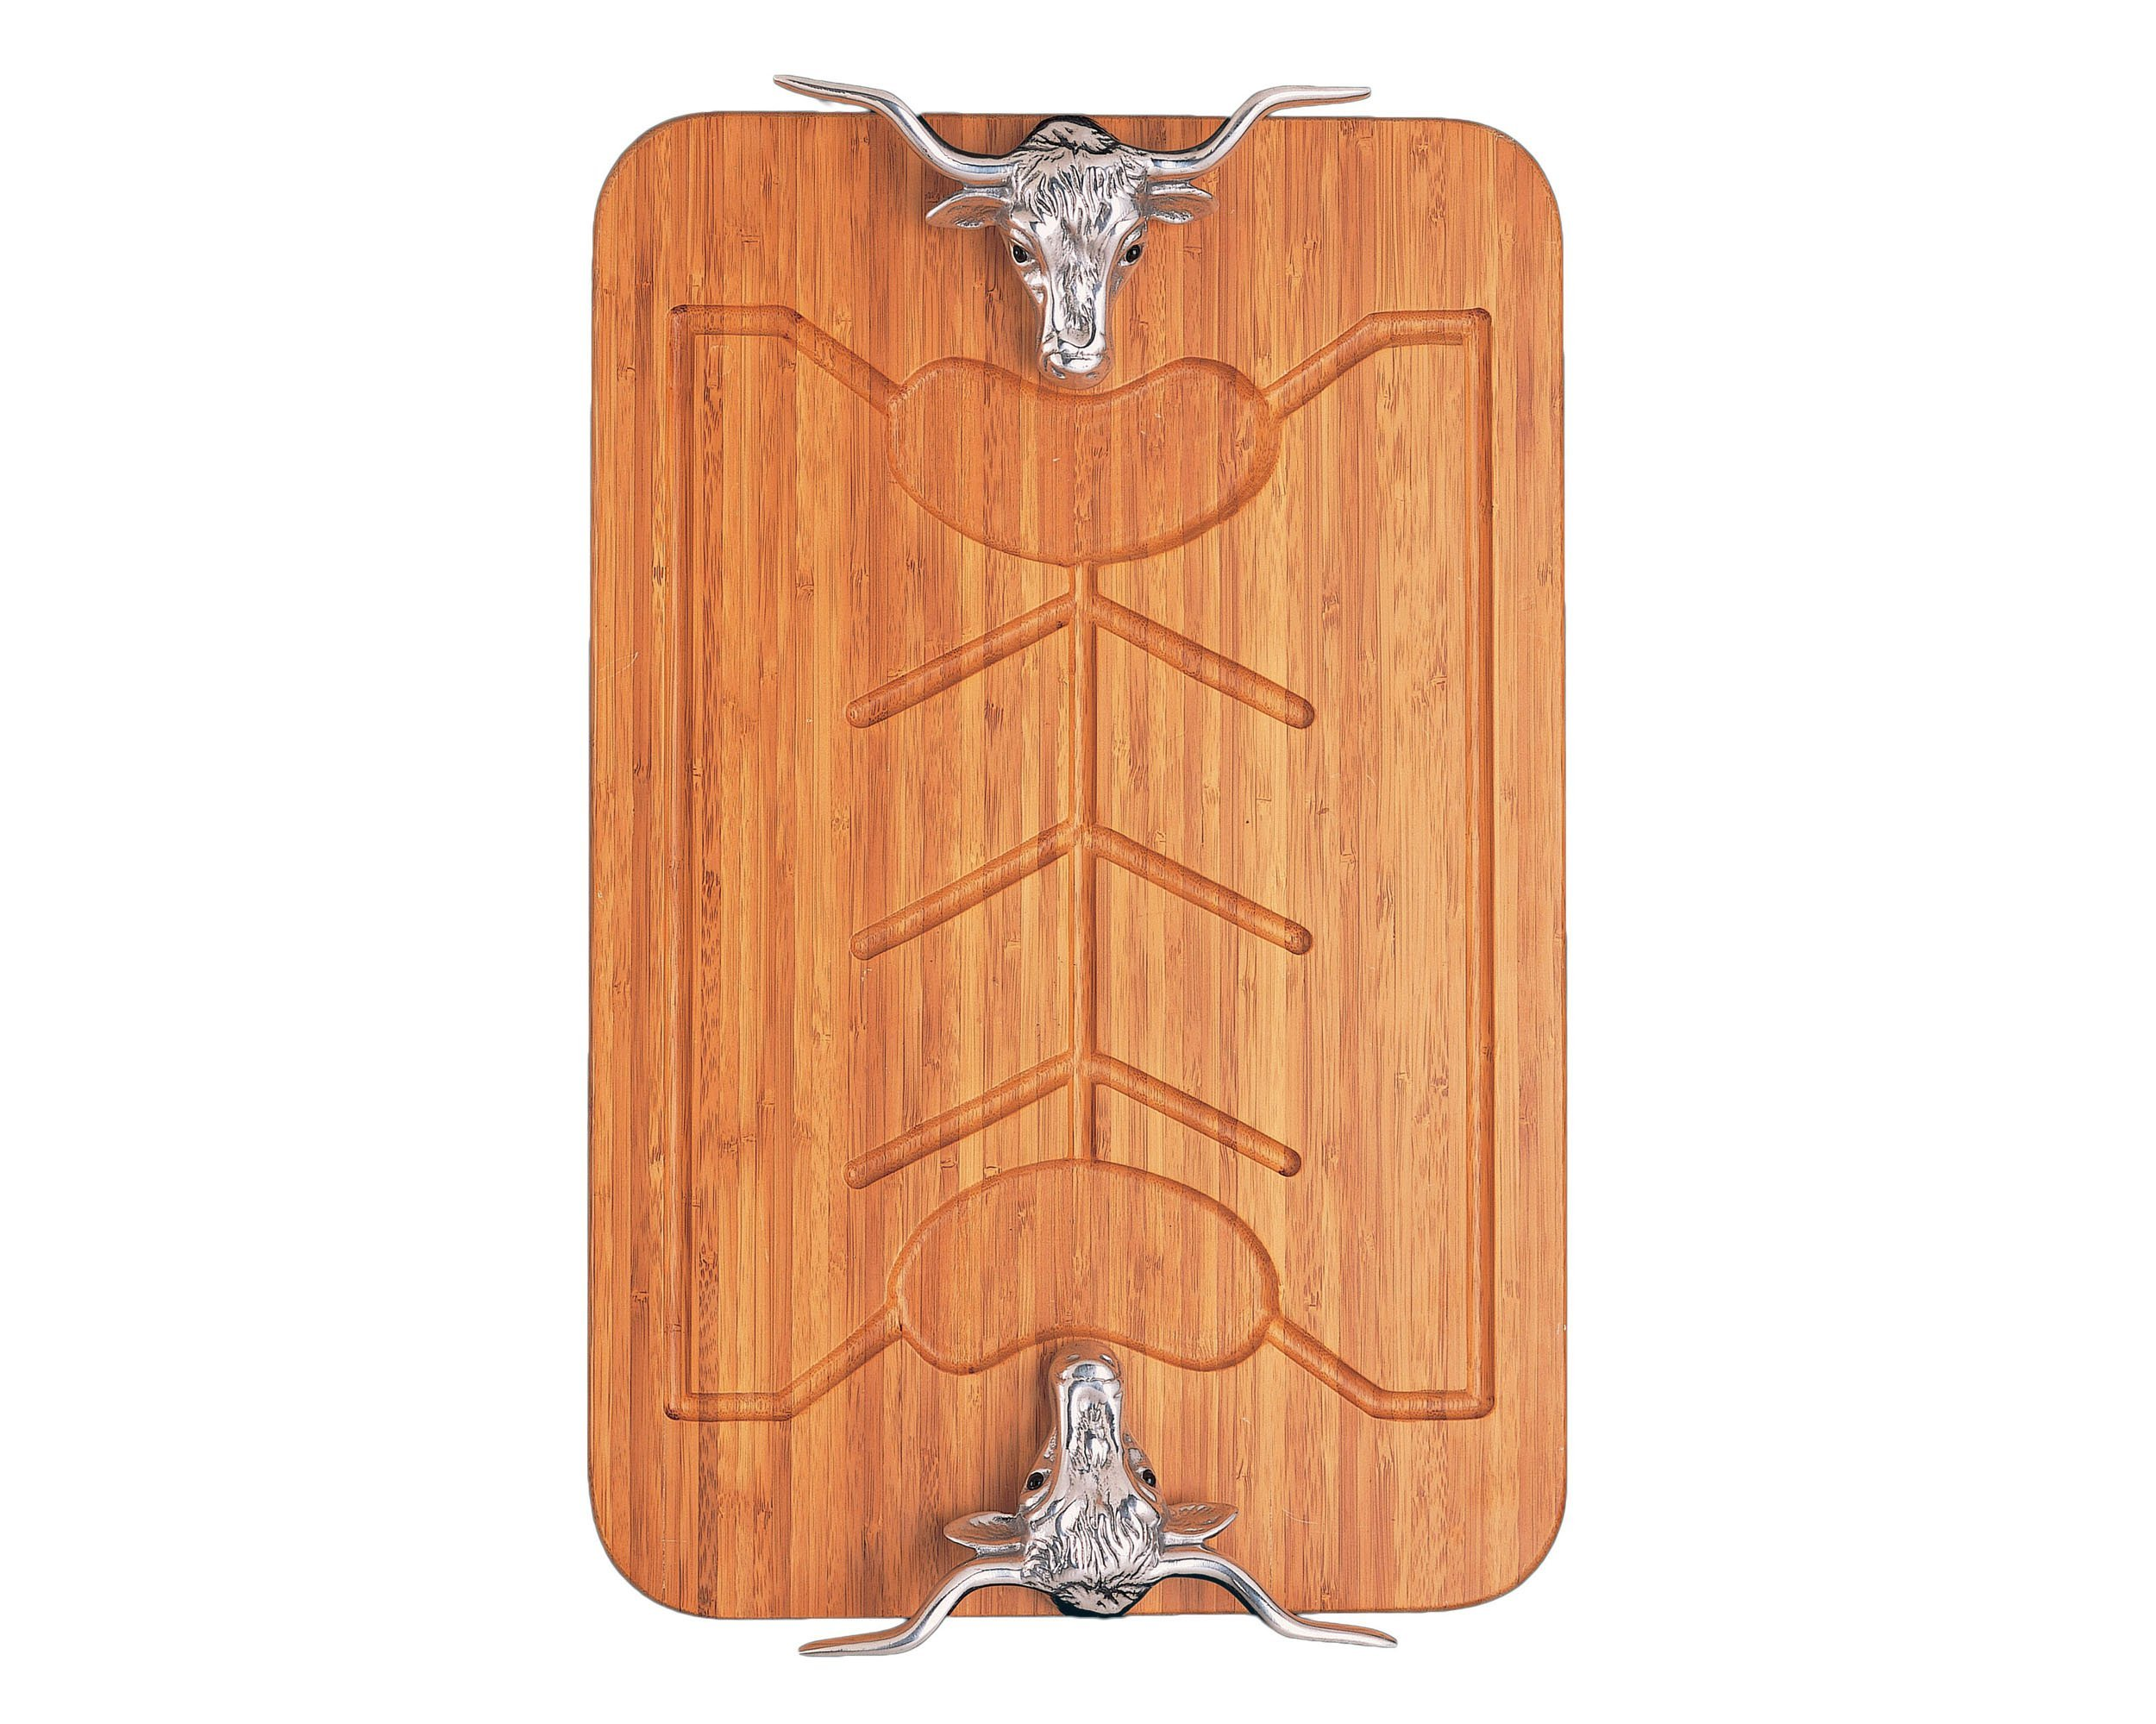 Arthur Court Longhorn 20-Inch Bamboo Carving Board by Arthur Court